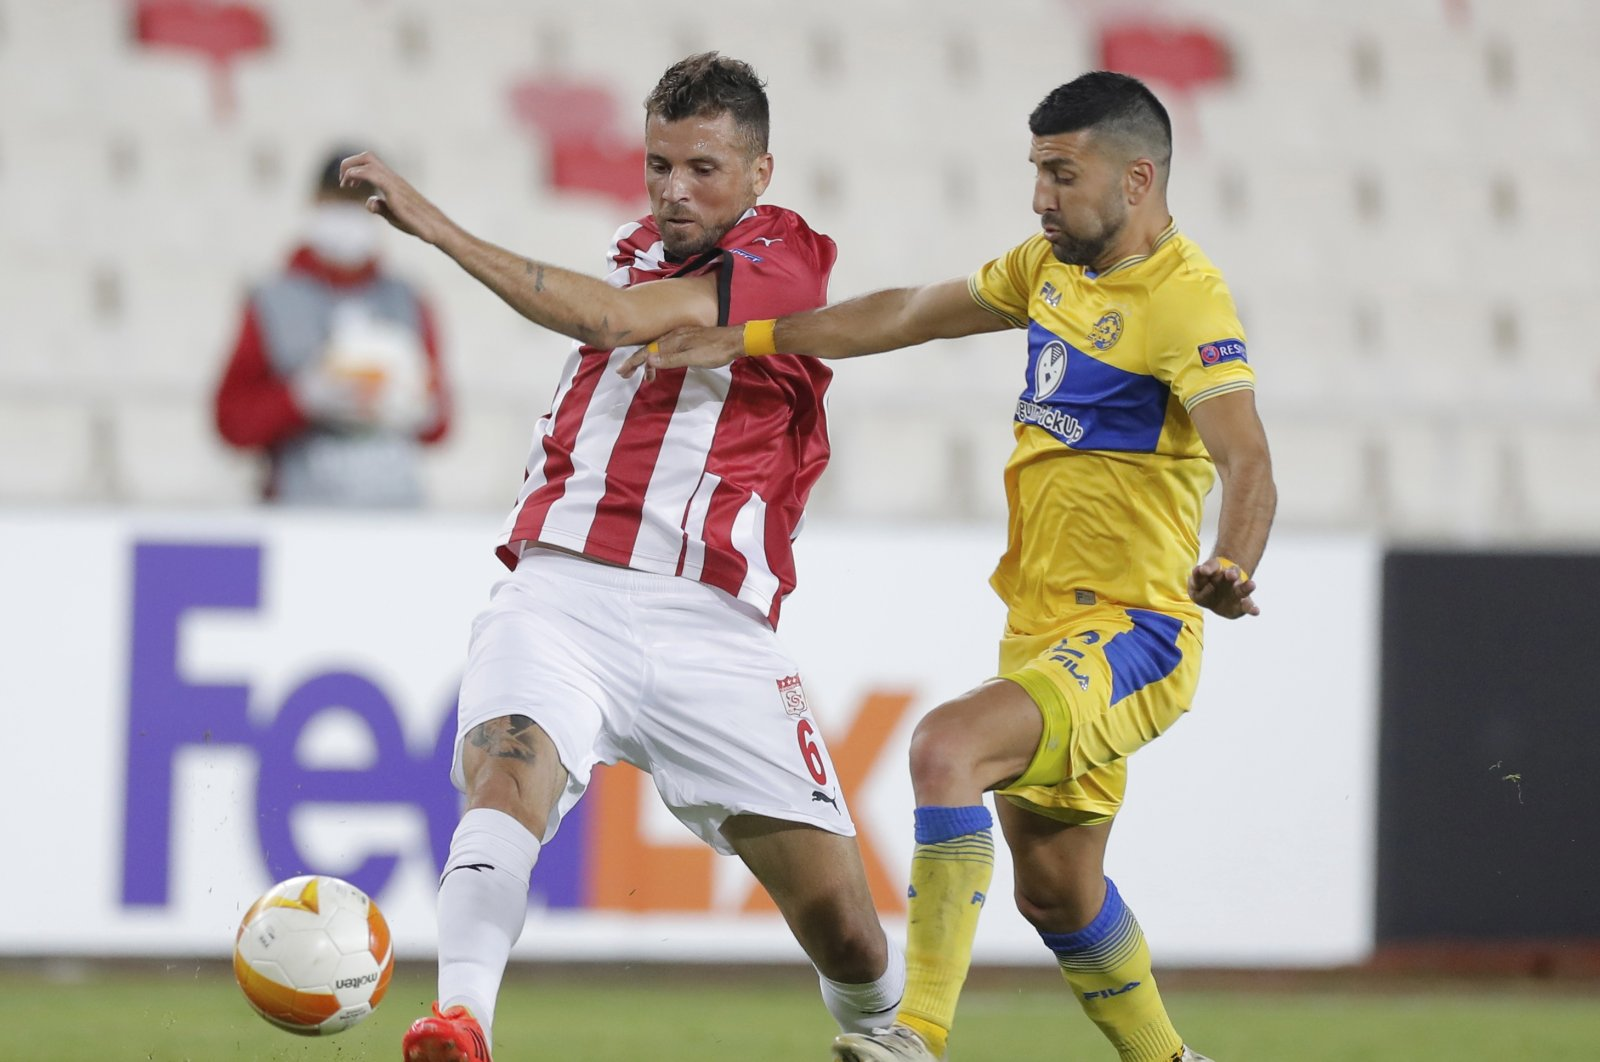 Sivasspor's Claudemir de Souza (L) and Maccabi Tel Aviv's Avi Rikan fight for the ball during the Europa League match, in Sivas, Turkey, Oct. 29, 2020. (AP Photo)